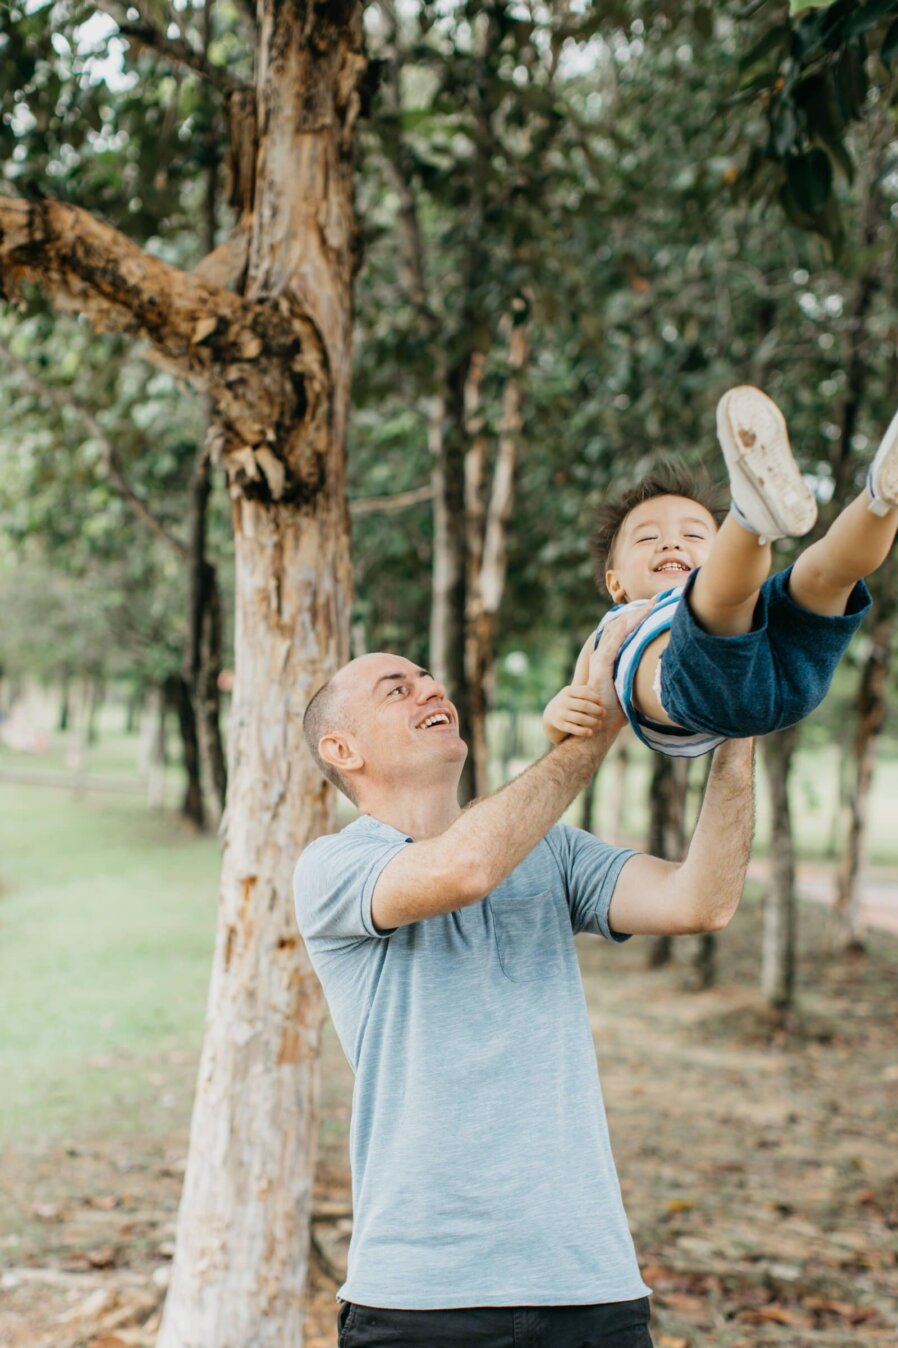 swing Cute little boy with daddy Damansar Tropical Family Portrait Session in Kuala Lumpur Malaysia